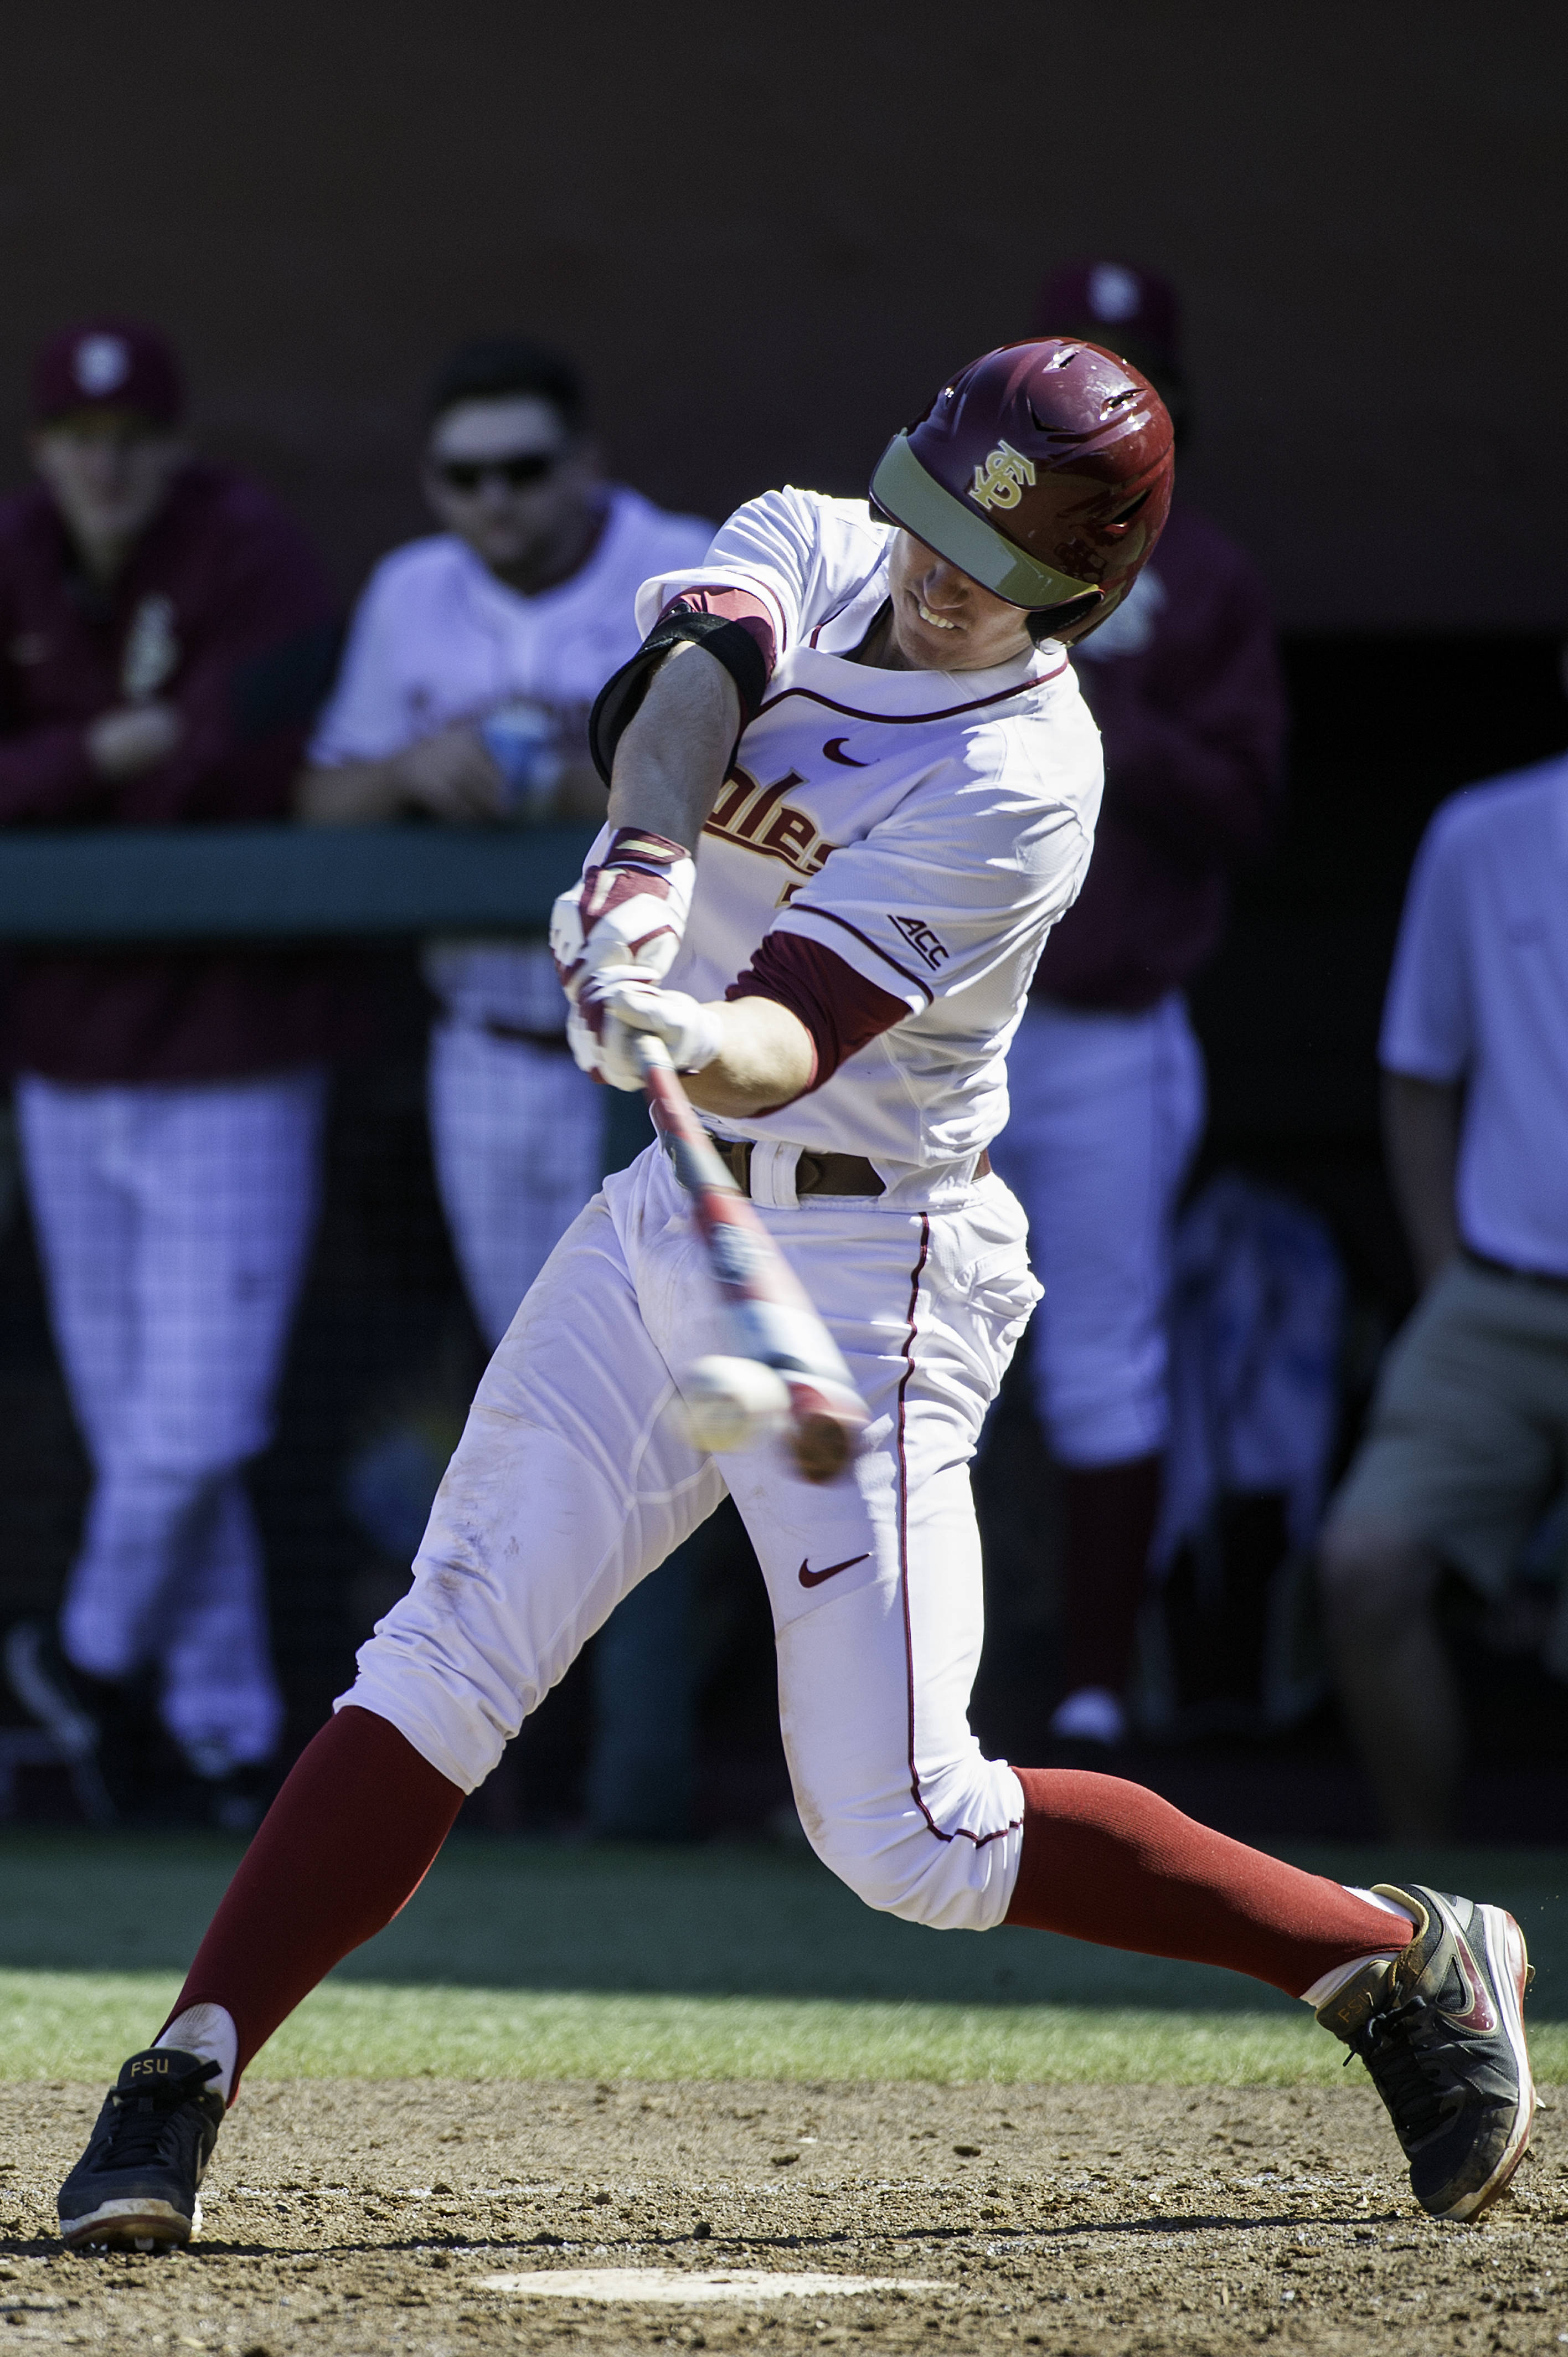 Florida State vs Oakland – Game 2